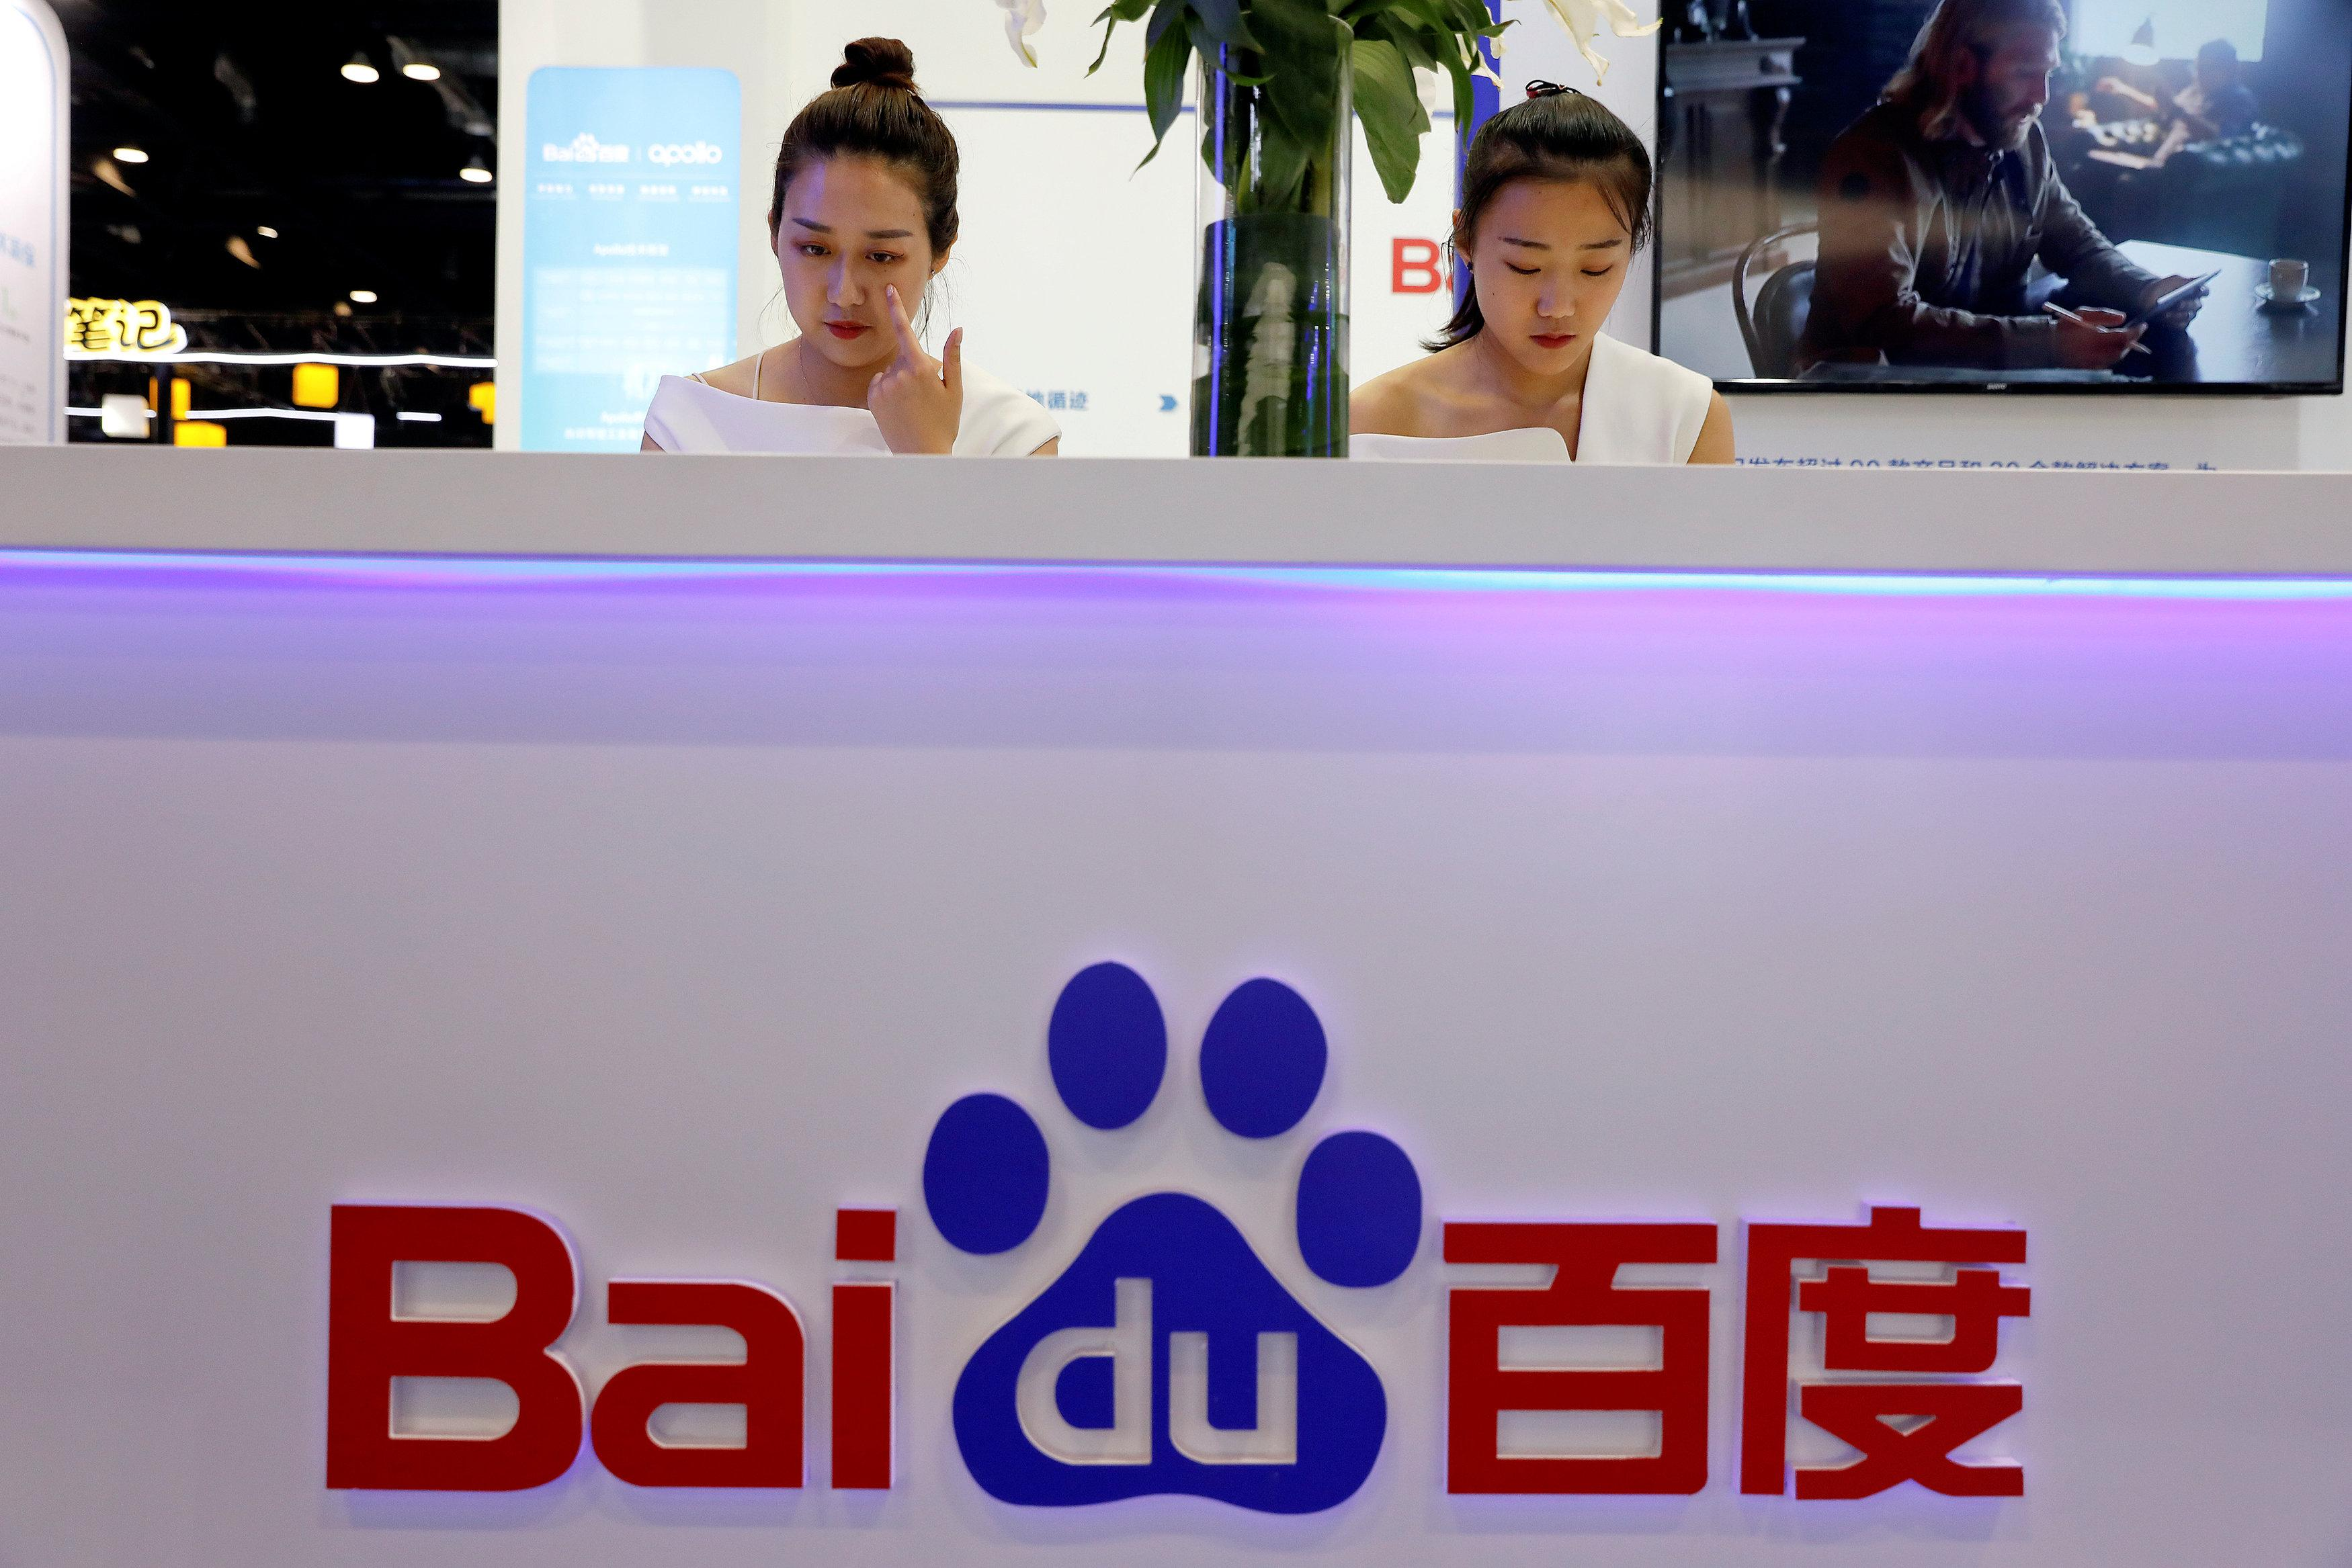 Members of staff work at the Baidu booth during Global Mobile Internet Conference (GMIC) at the National Convention in Beijing, China April 27, 2018. Damir Sagolj